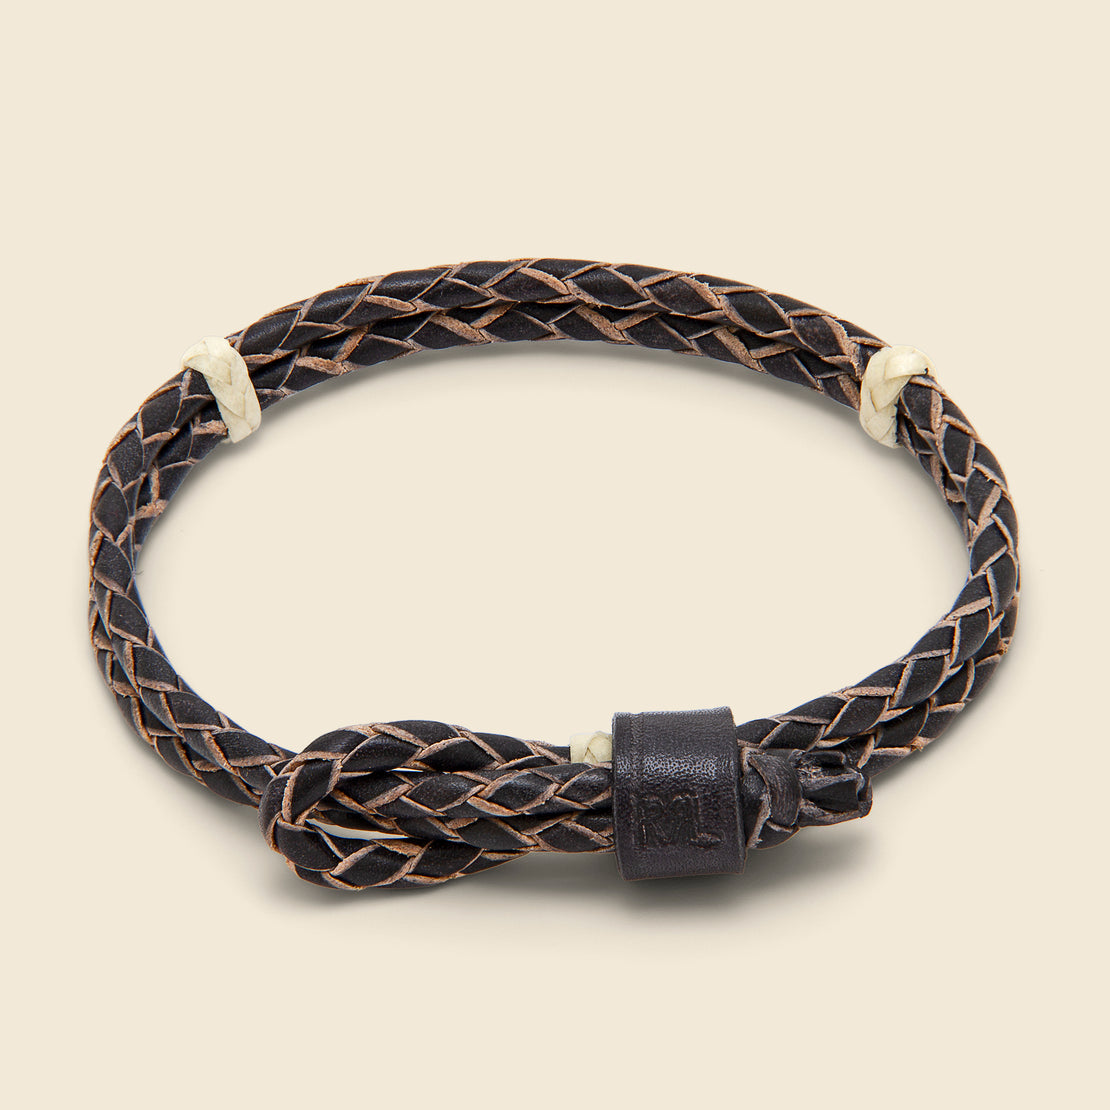 RRL Braided Leather Cuff - Black/Cream